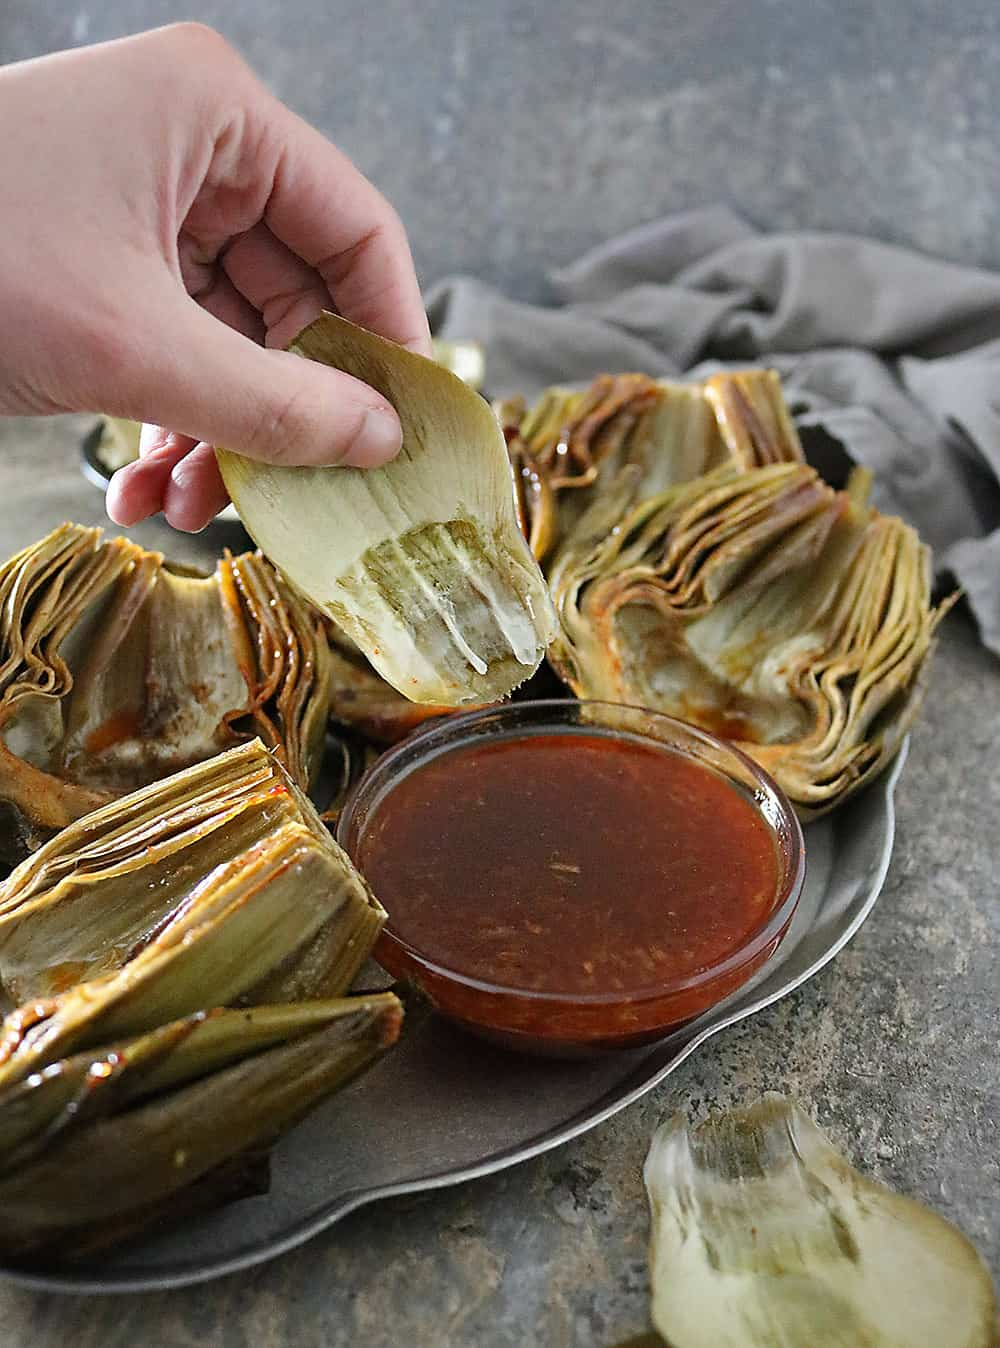 Delicious fresh artichokes are cleaned, trimmed, de-choked, and slathered with a tastebud tantalizing, Honey Orange Chili Sauce and oven roasted into a side your friends and family are so to get a kick out of!